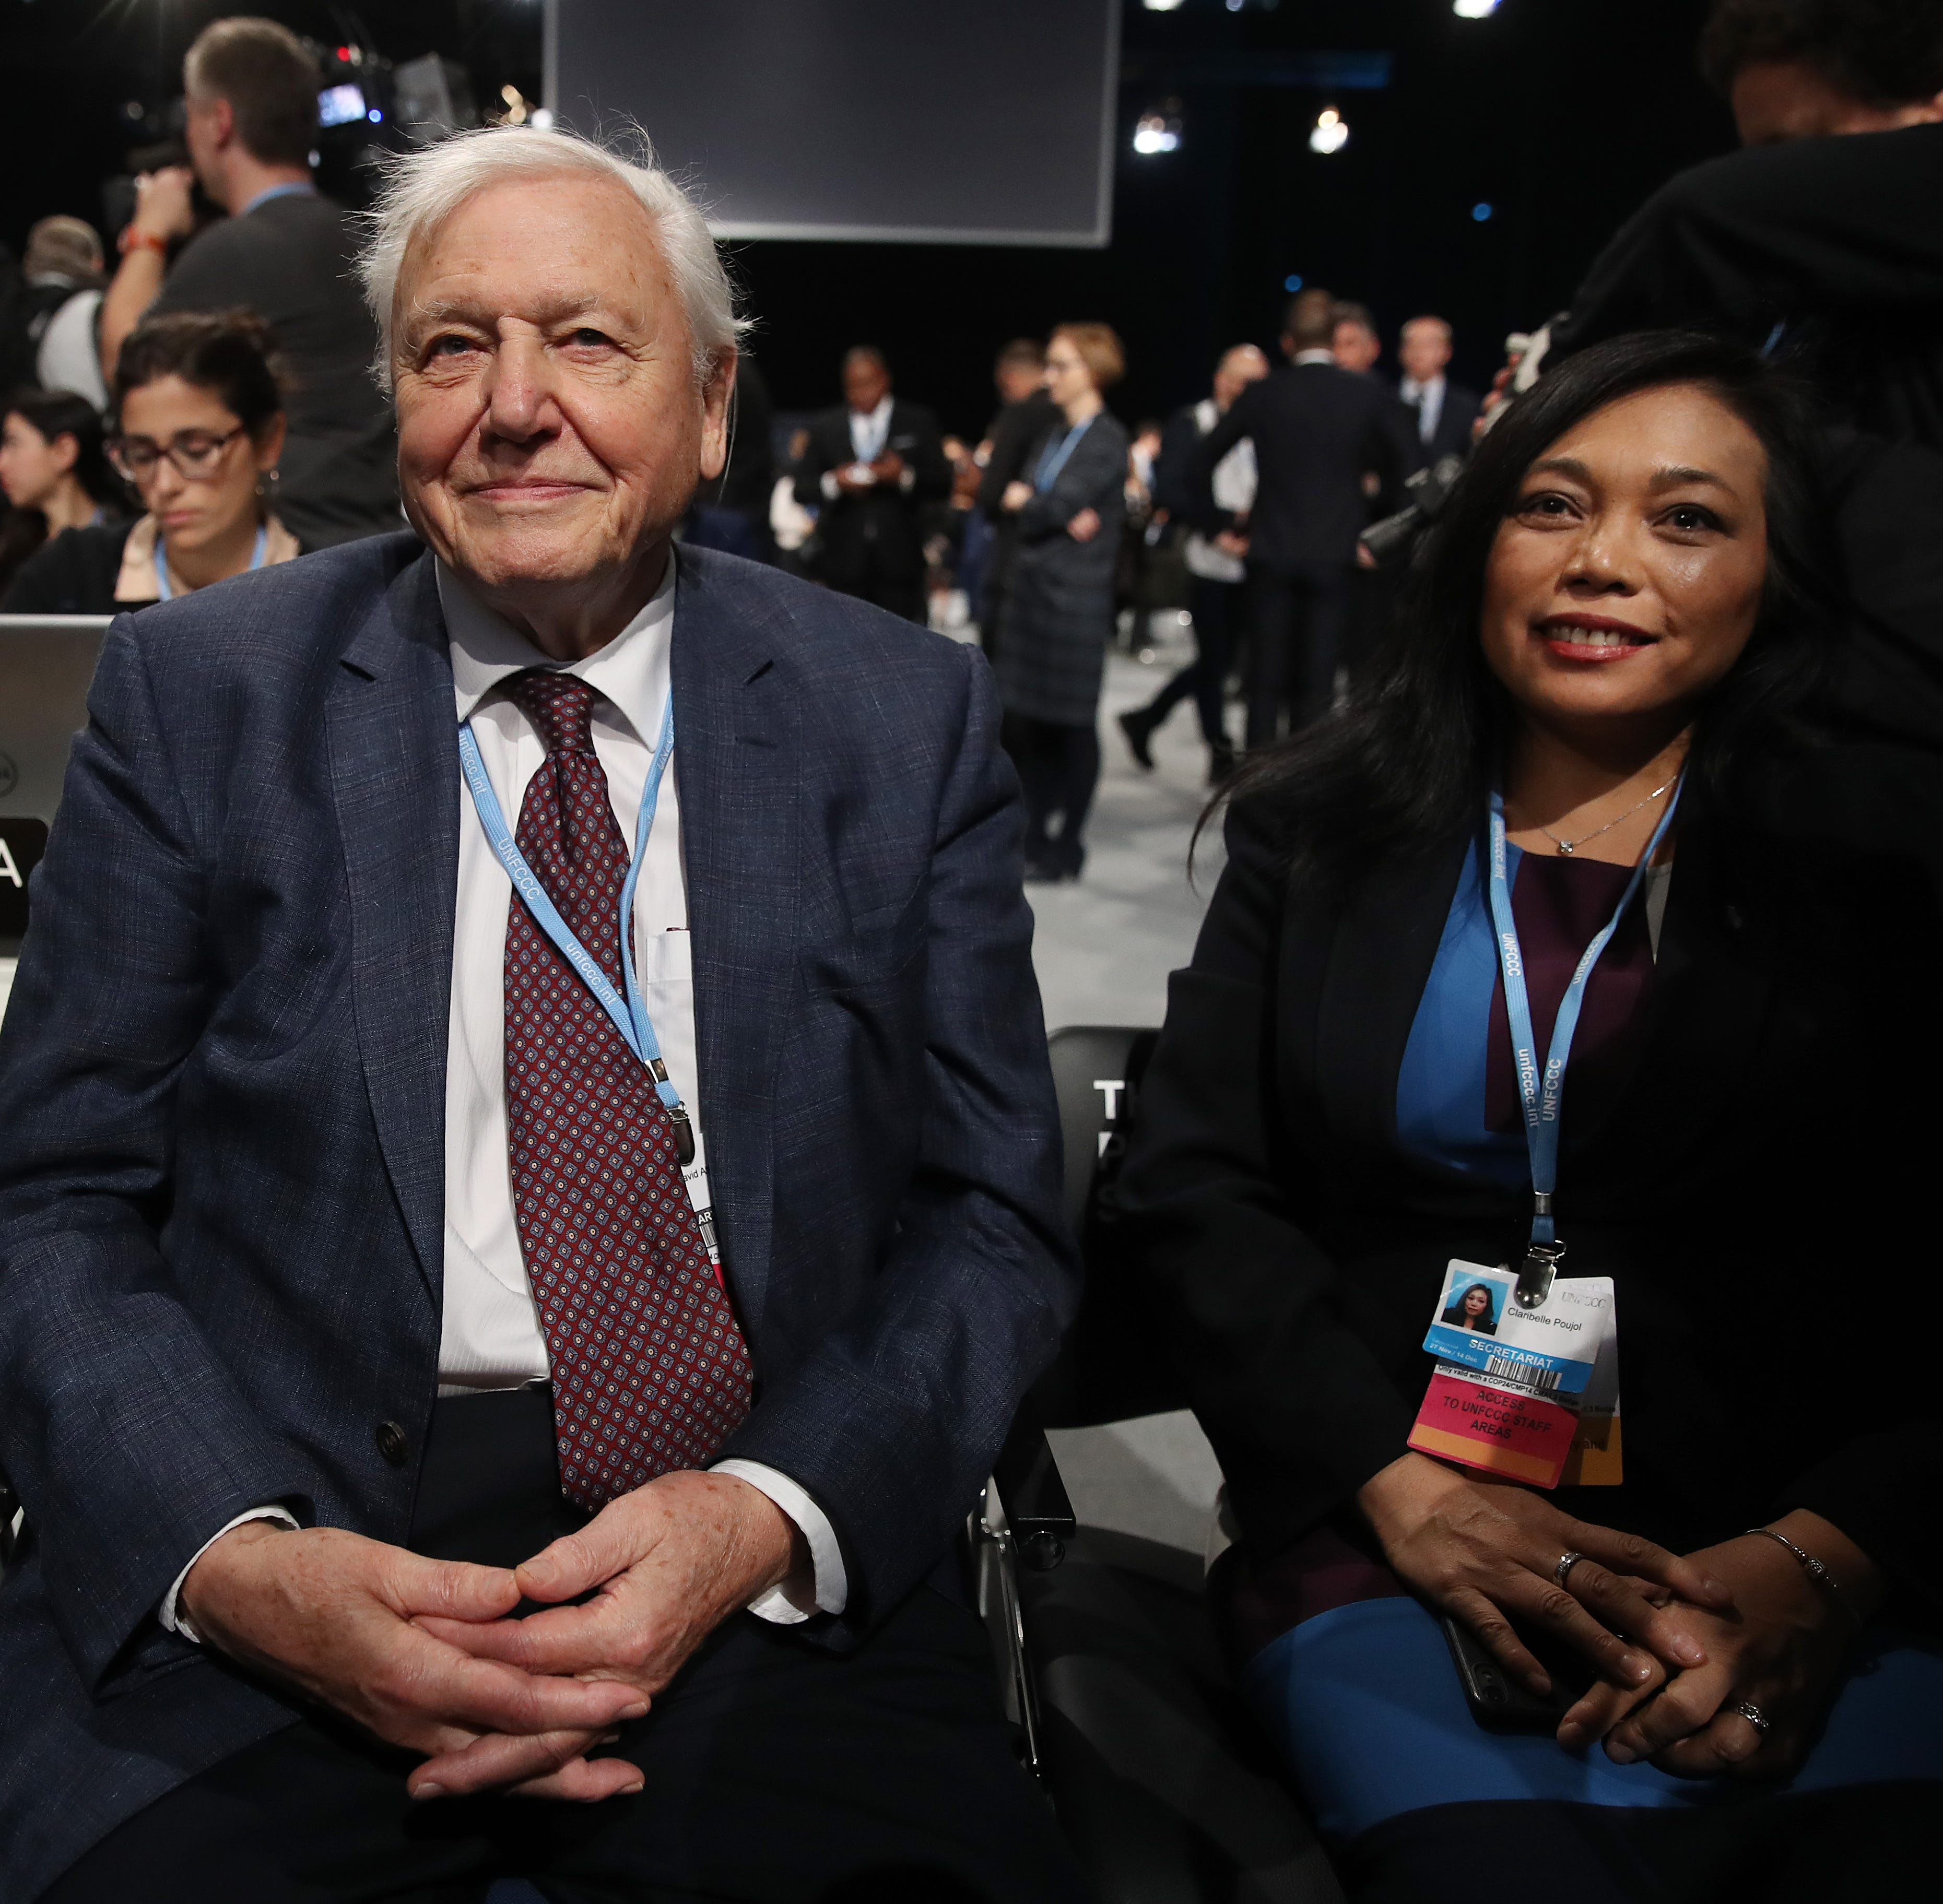 Climate change could lead to 'a collapse of our civilization' according to Sir David Attenborough